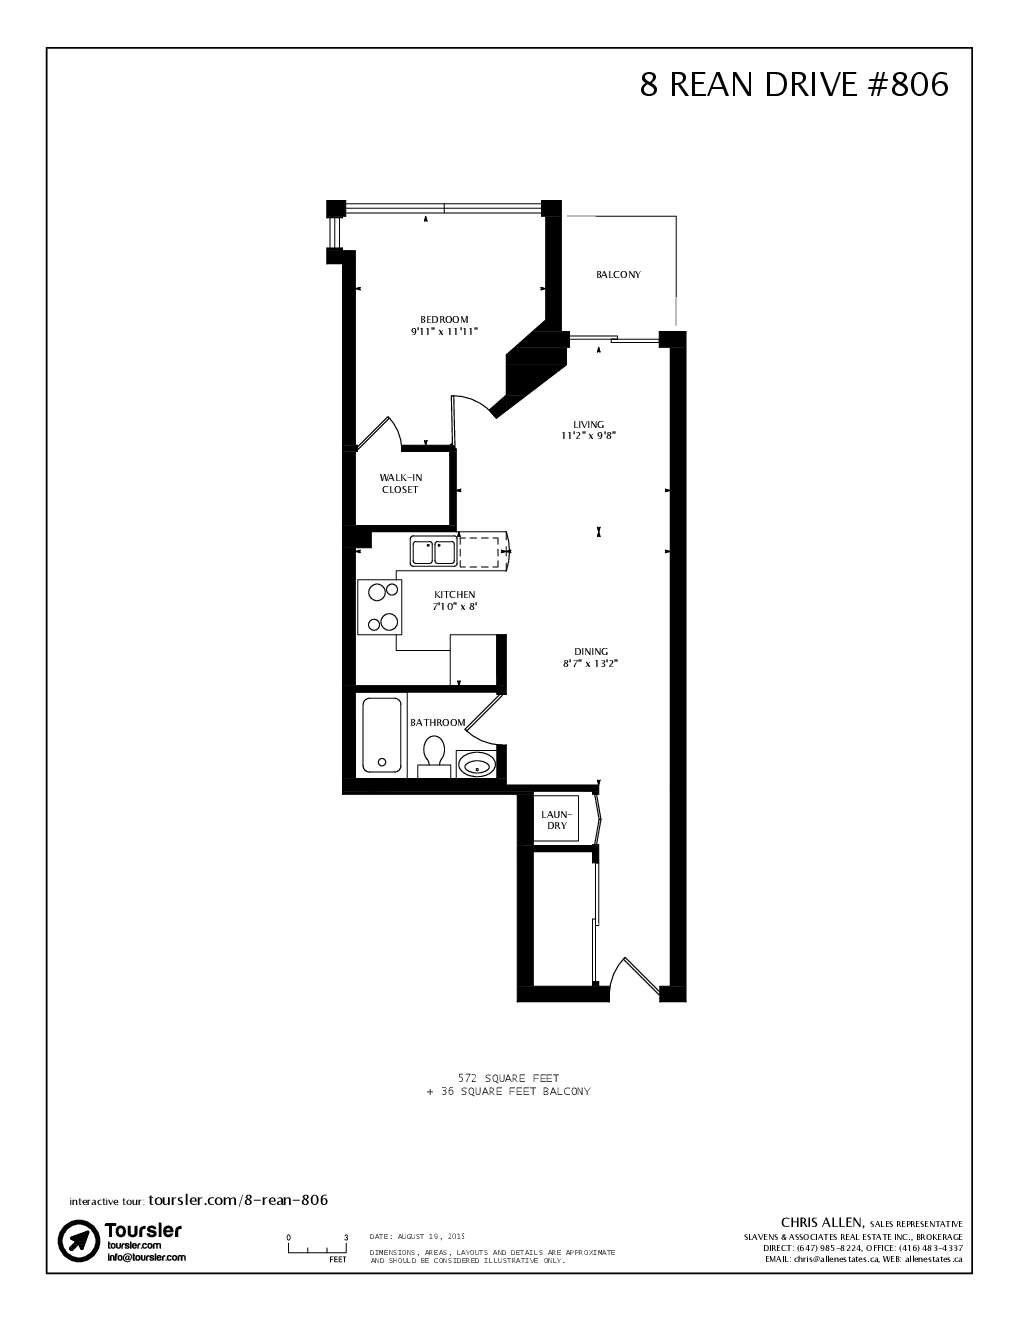 1 Rean Drive Floor Plans 8 Rean Drive 806 Th15 1 Rean